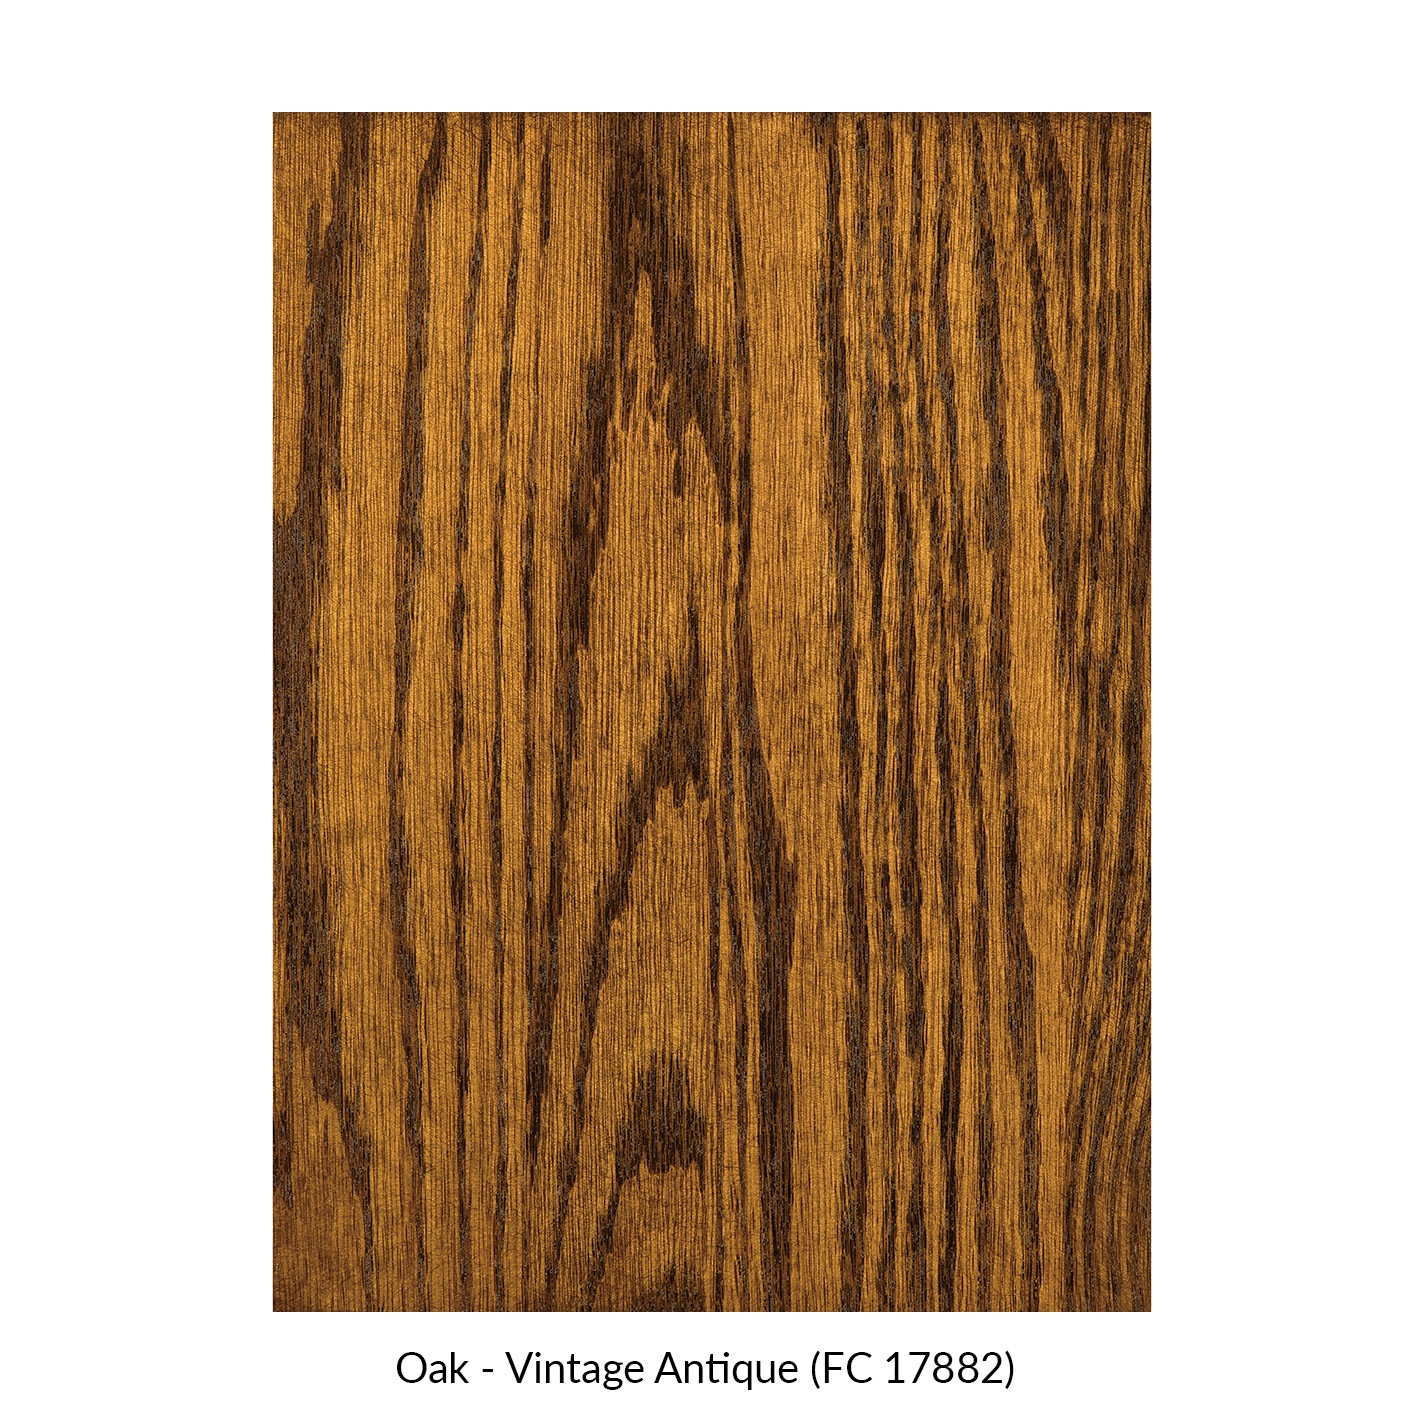 spectrum-oak-vintage-antique-fc-17882.jpg